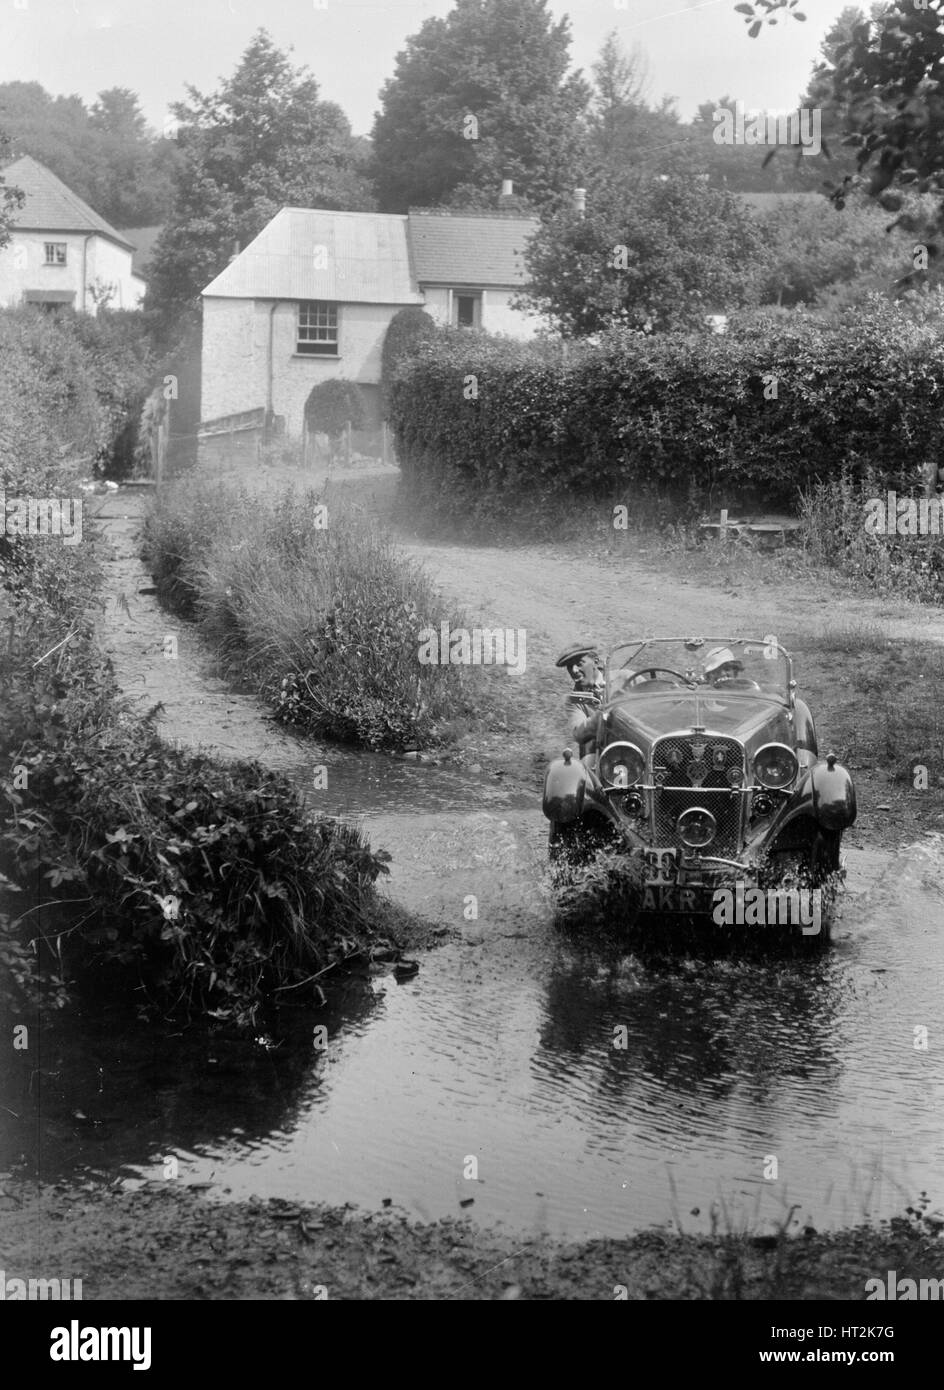 Singer competing in the B&HMC Brighton-Beer Trial, Windout Lane, near Dunsford, Devon, 1934. Artist: Bill Brunell. - Stock Image